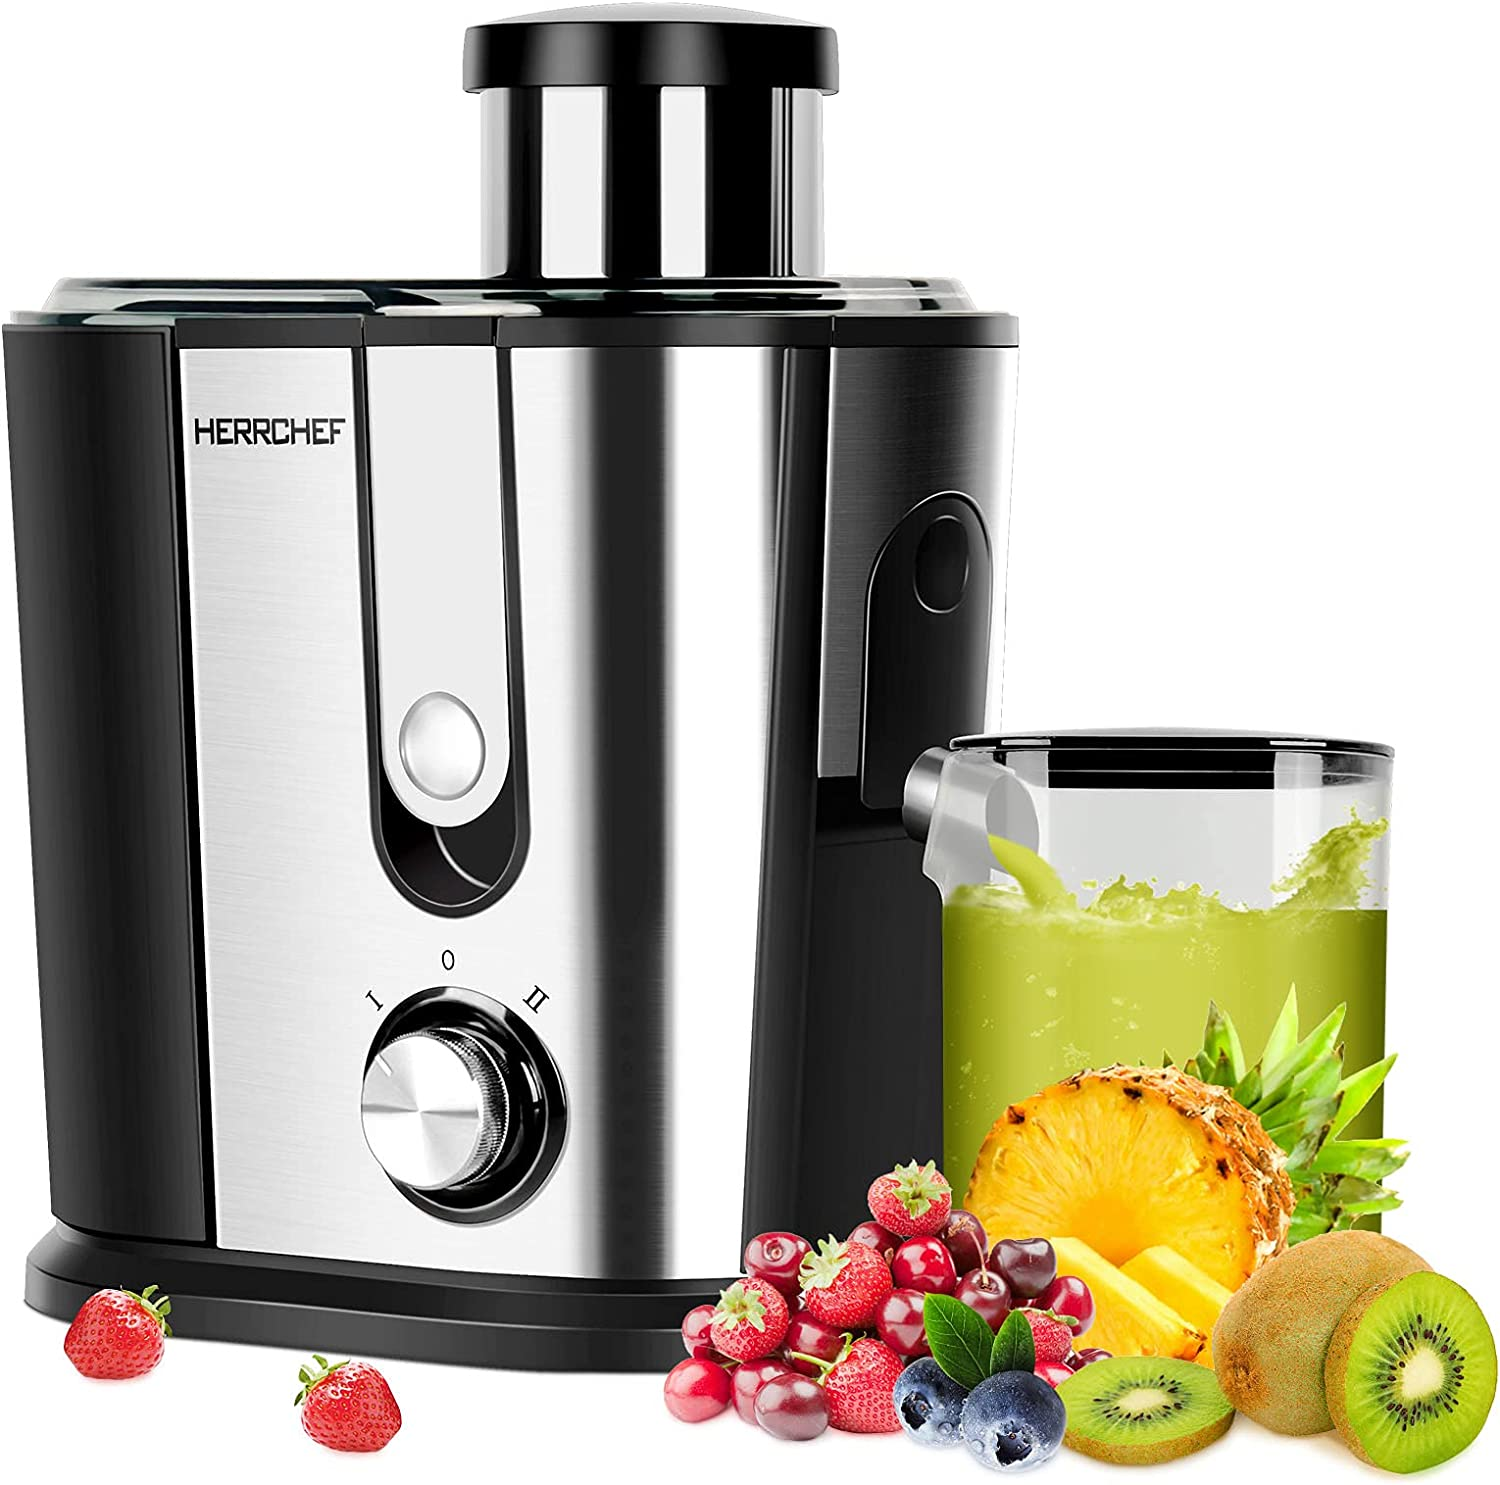 Juicer Machines, HERRCHEF 600W Juice Extractor with 3'' Wide Mouth, 2 Speed Stainless Steel Compact Centrifugal Juicer for Vegetable and Fruit Easy to Clean, with Anti-drip, BPA-Free